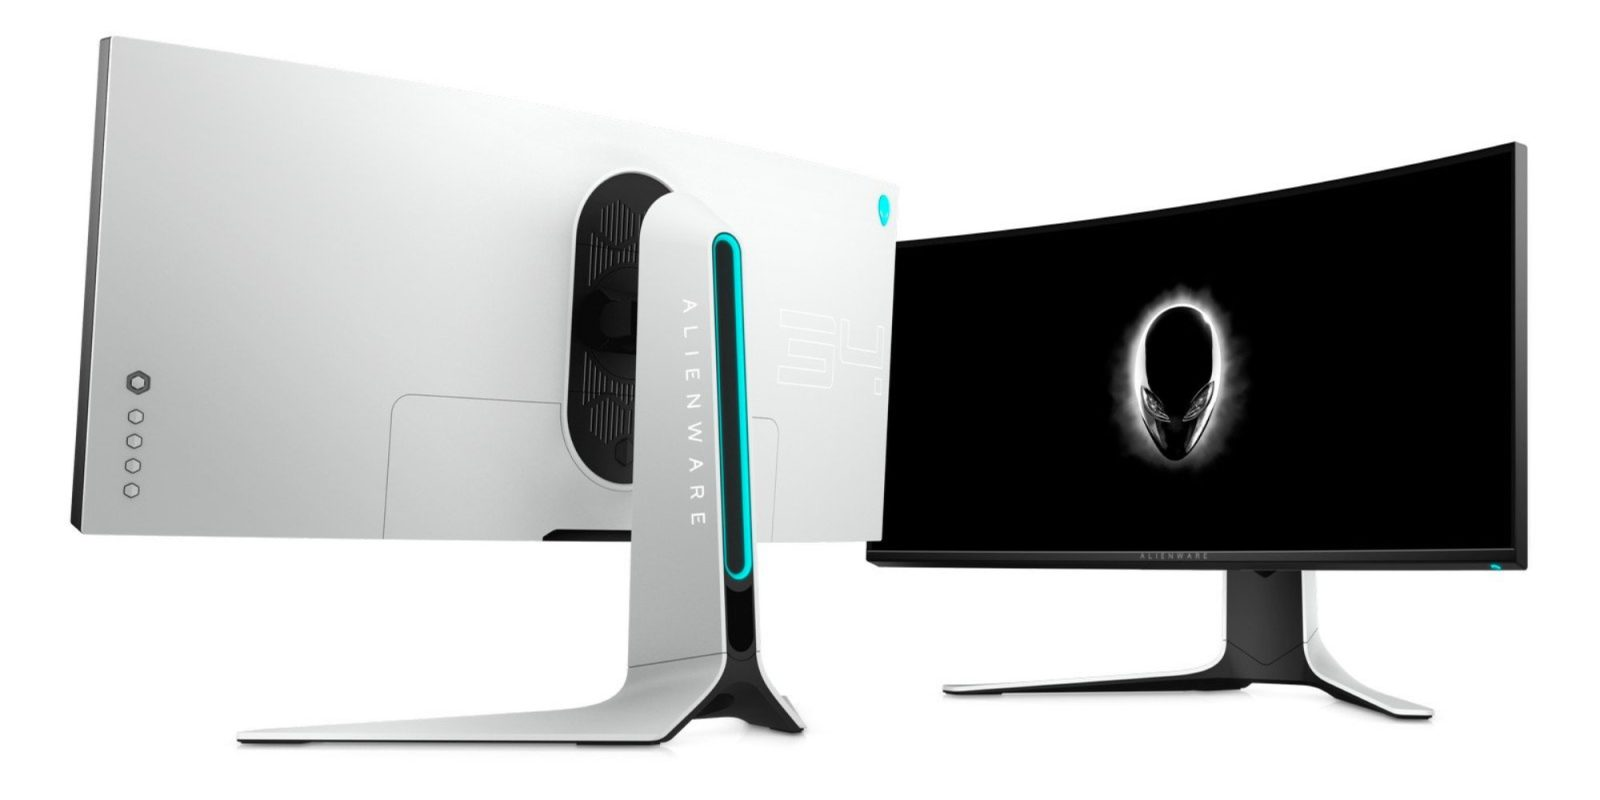 Alienware's supersized 55-inch OLED Monitor is capable of 4K at 120Hz, more